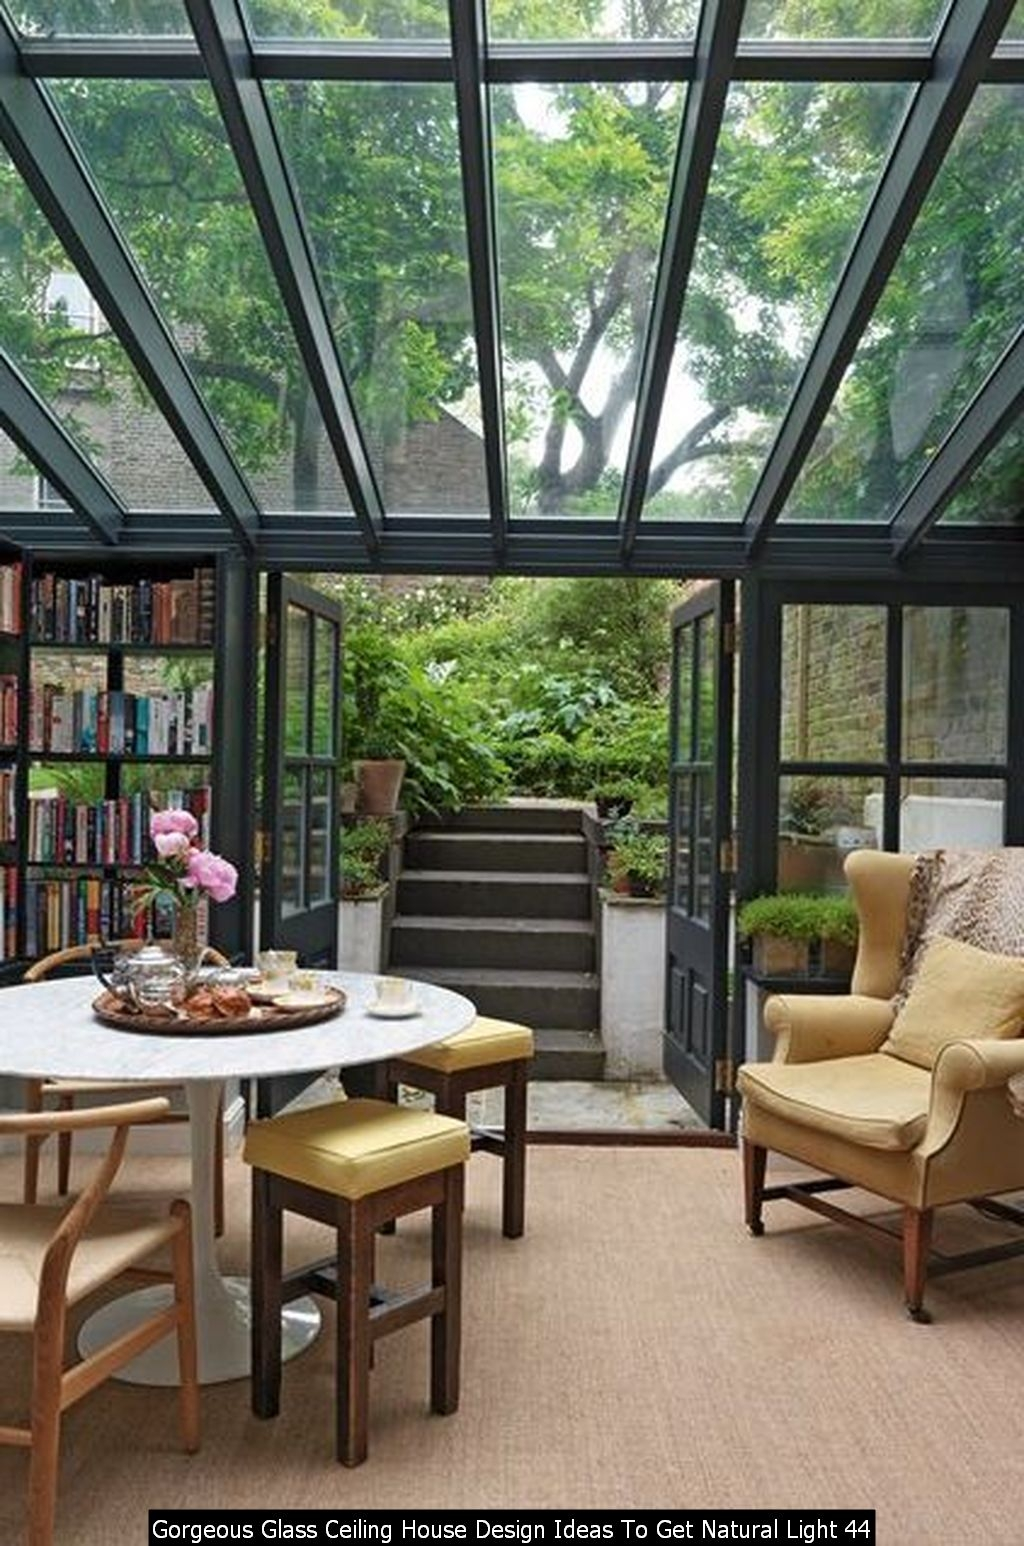 Gorgeous Glass Ceiling House Design Ideas To Get Natural Light 44